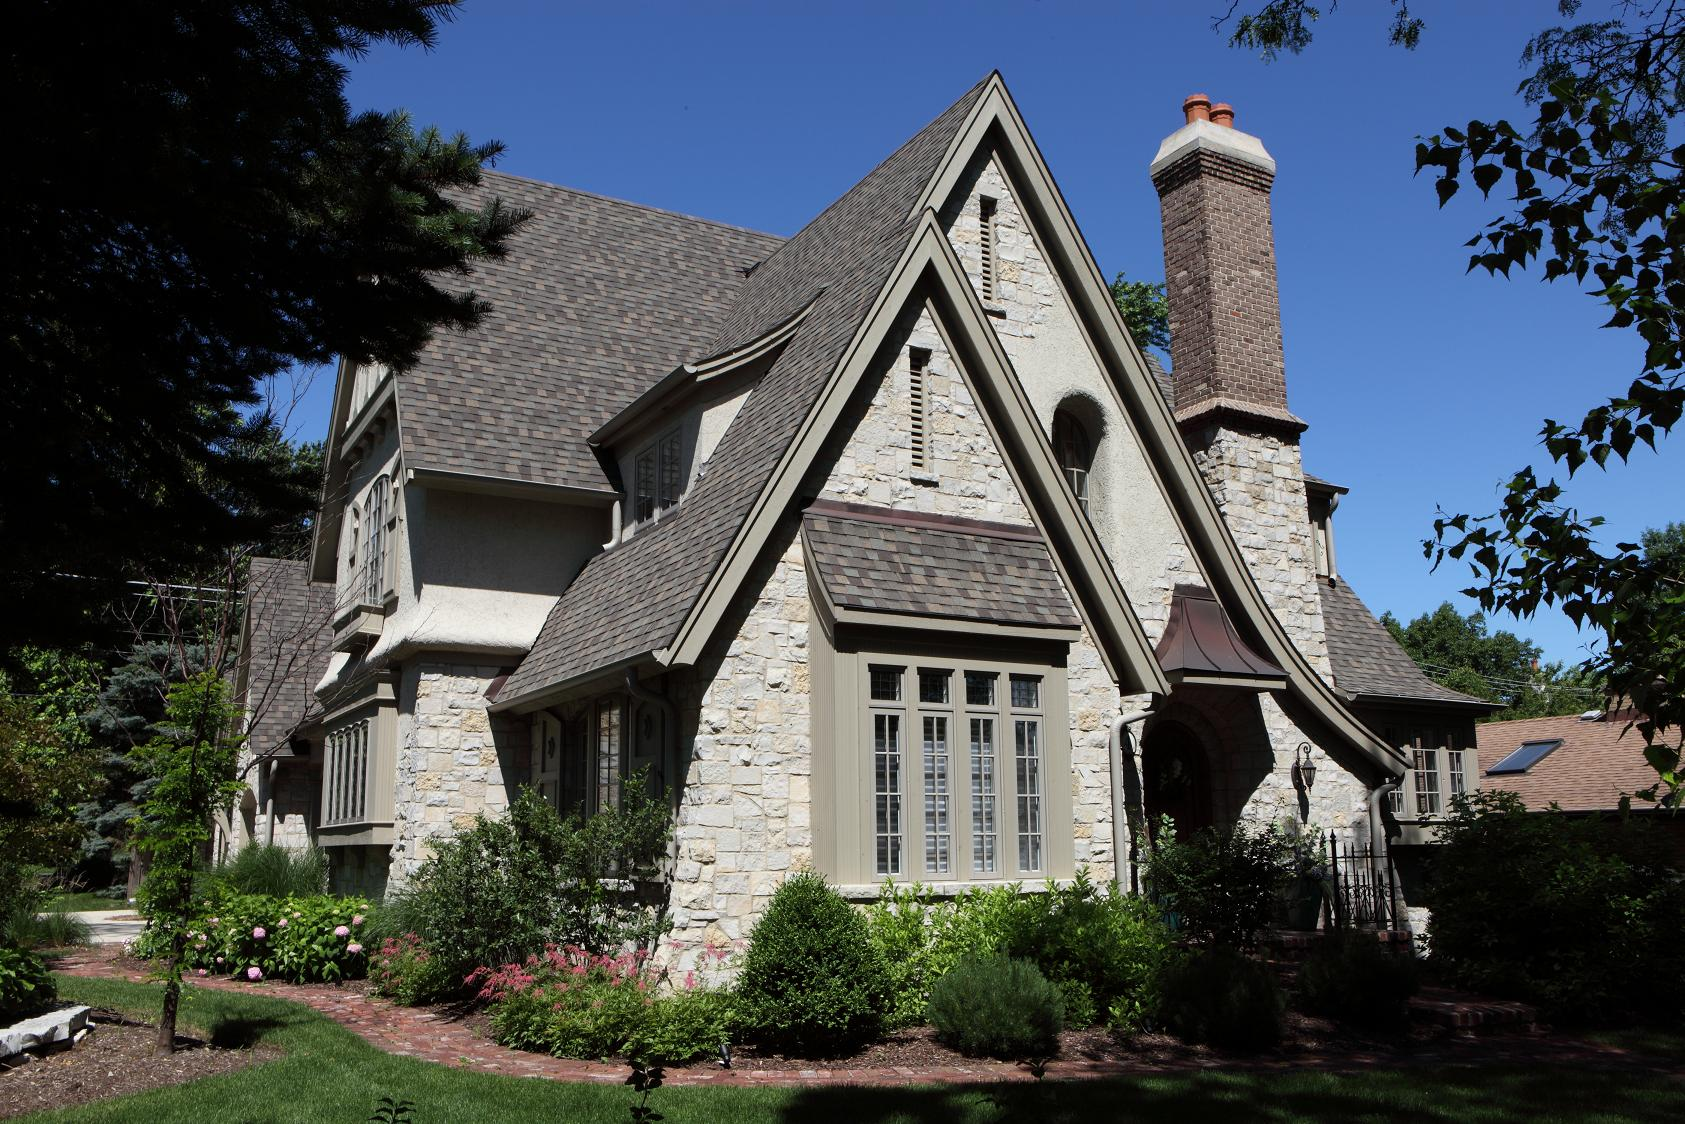 Battaglia Homes Builds Homes In Hinsdale Inspired By Old